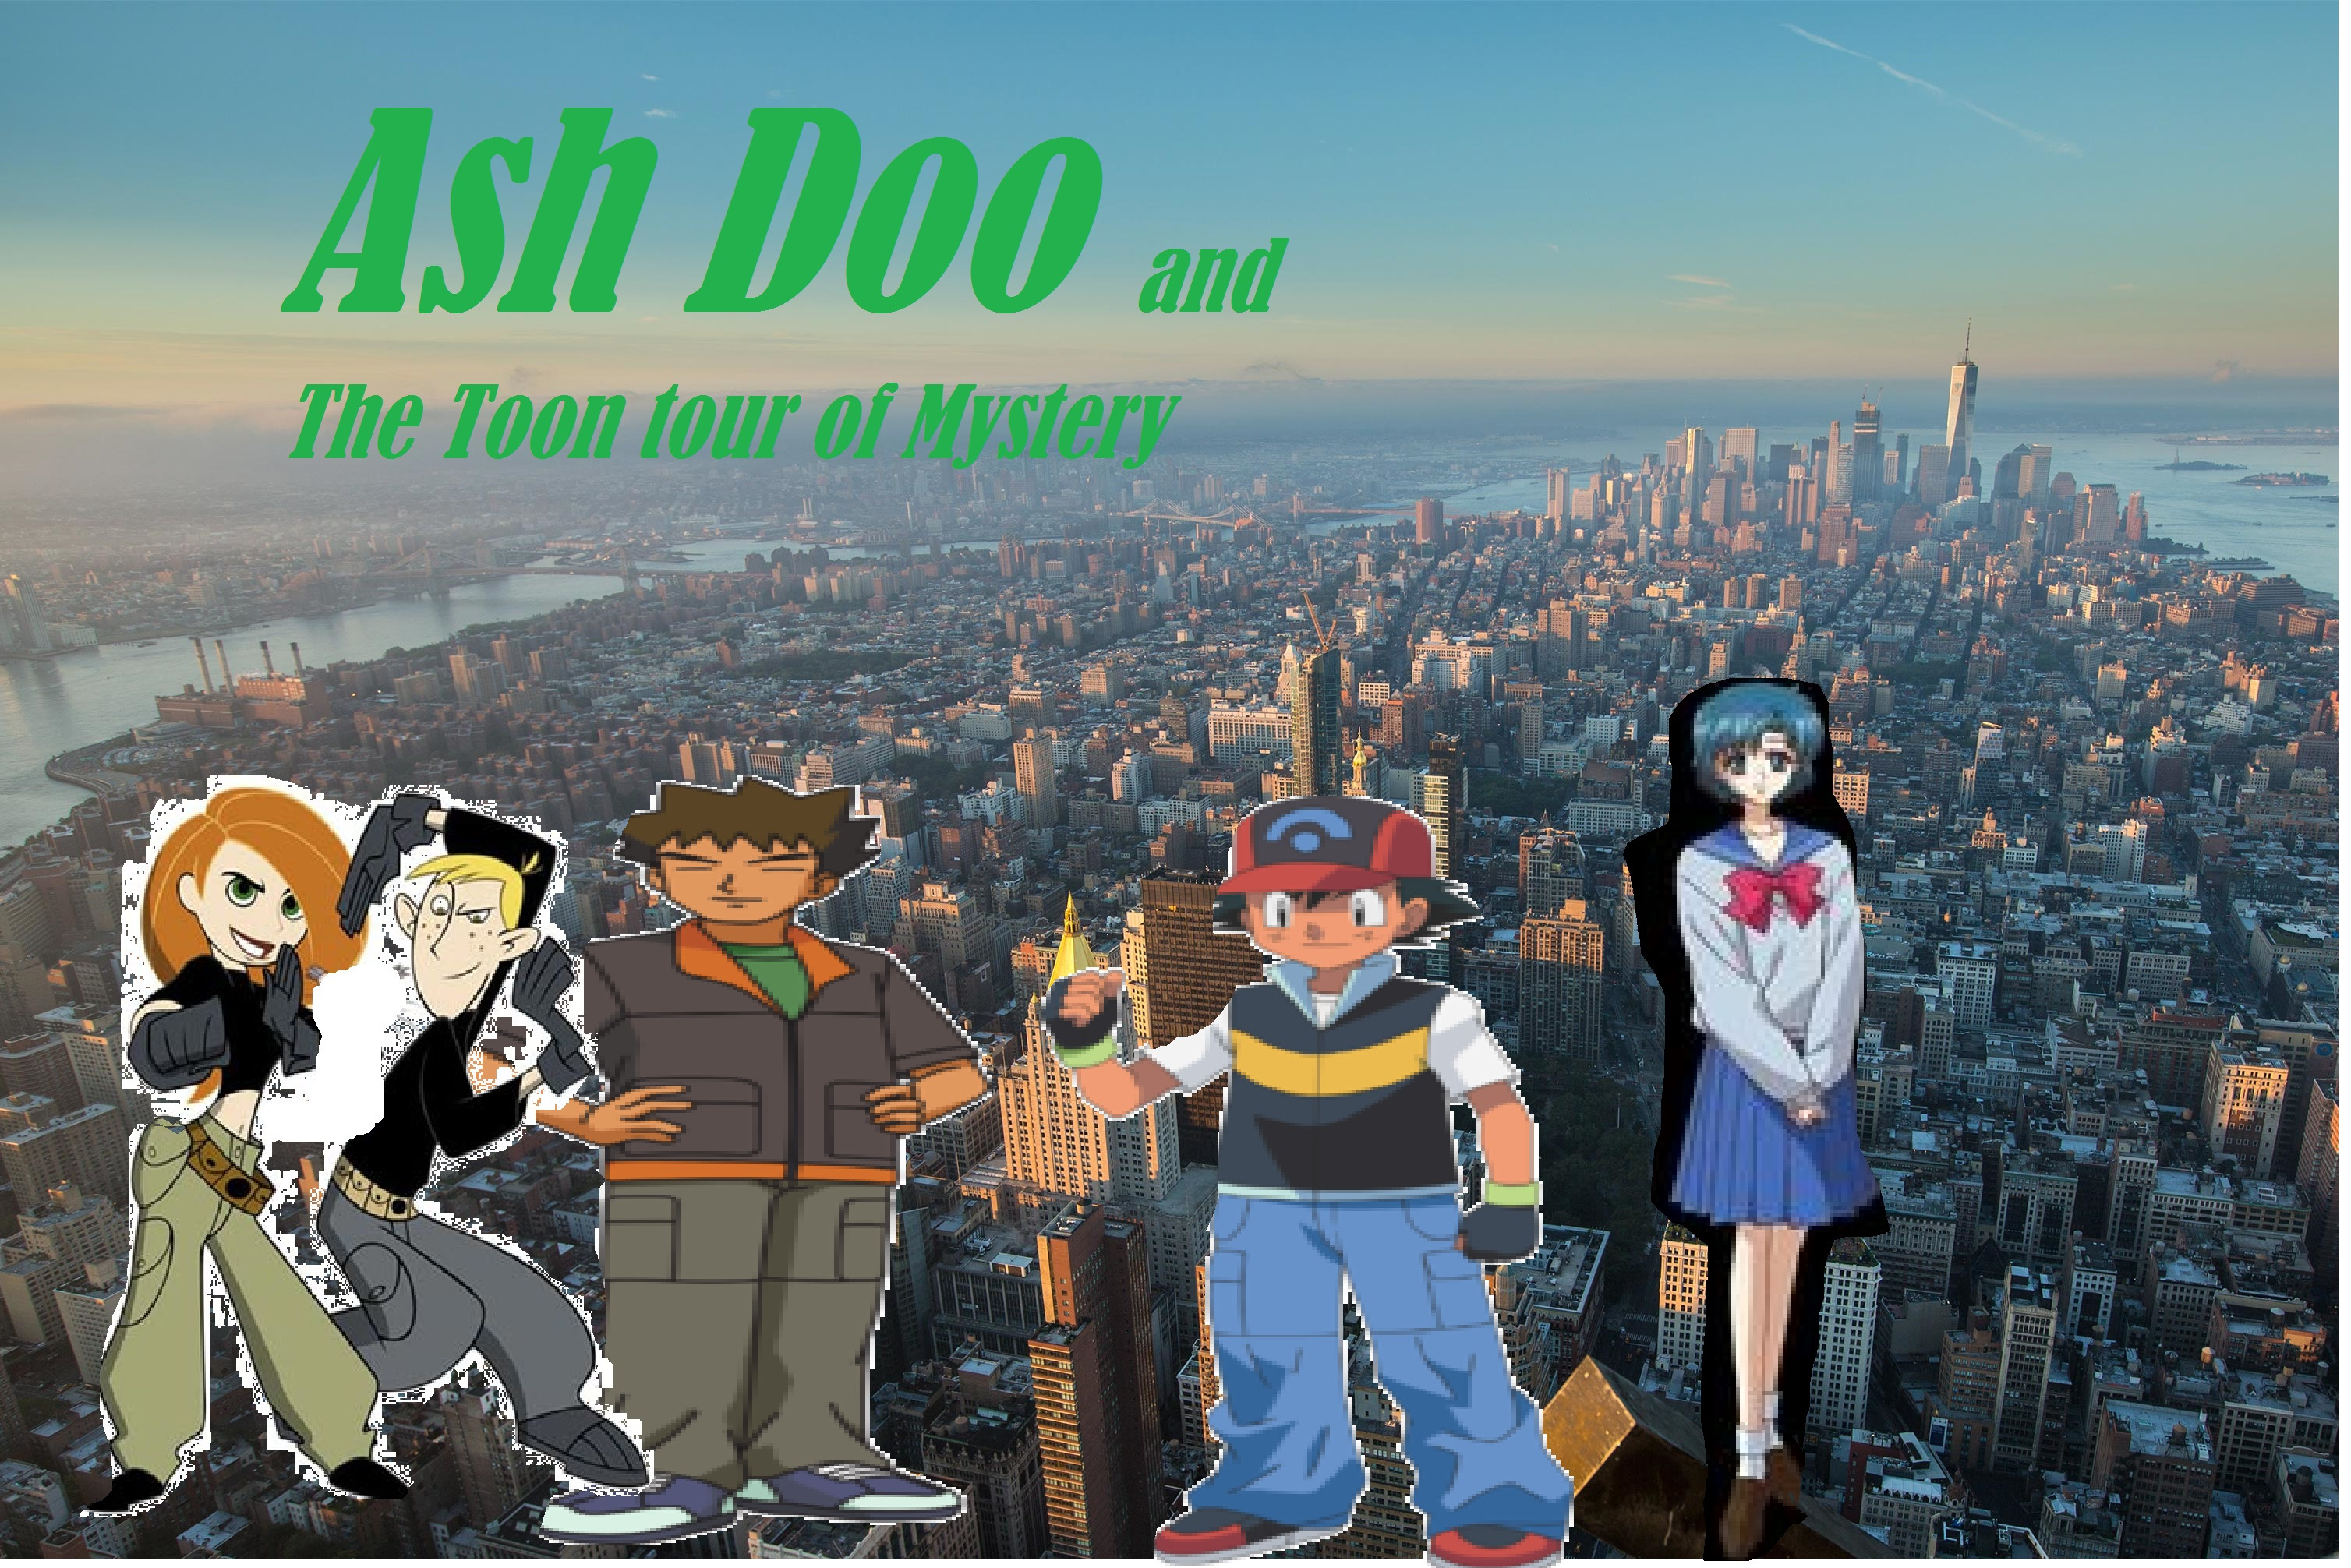 Ash Doo and the Toon Tour of Mysteries